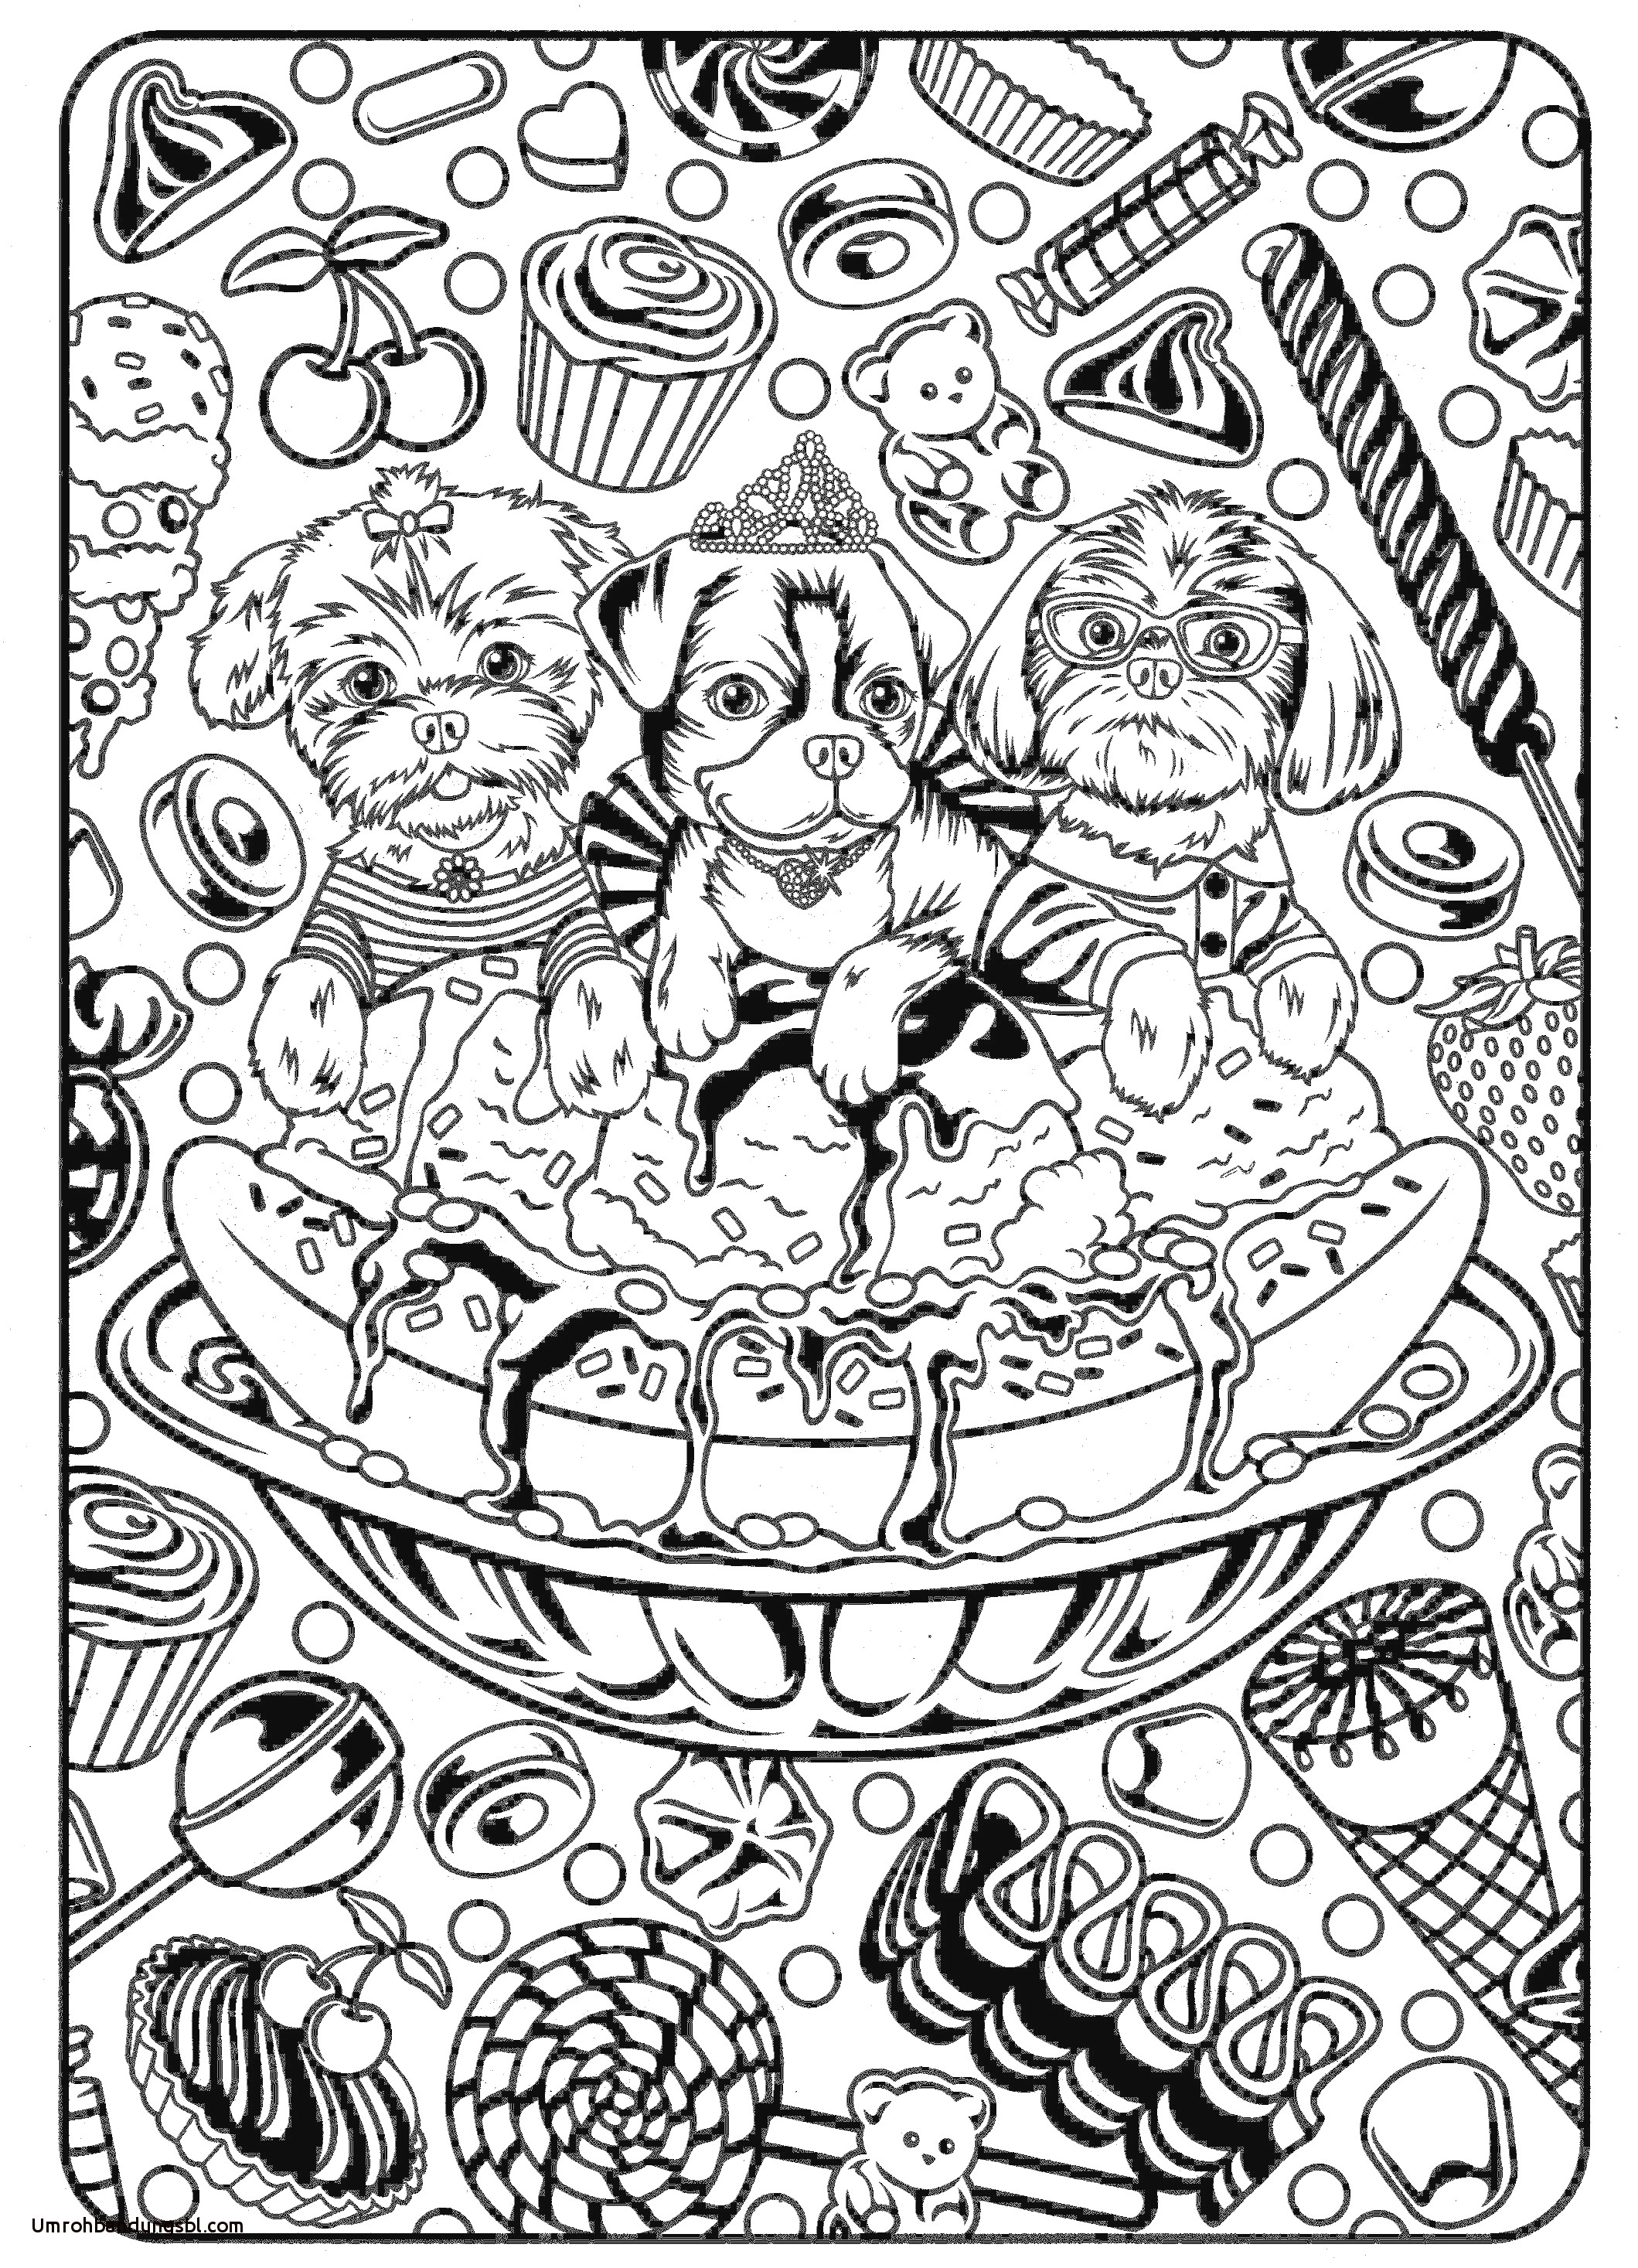 20 disney coloring pages online download coloring sheets